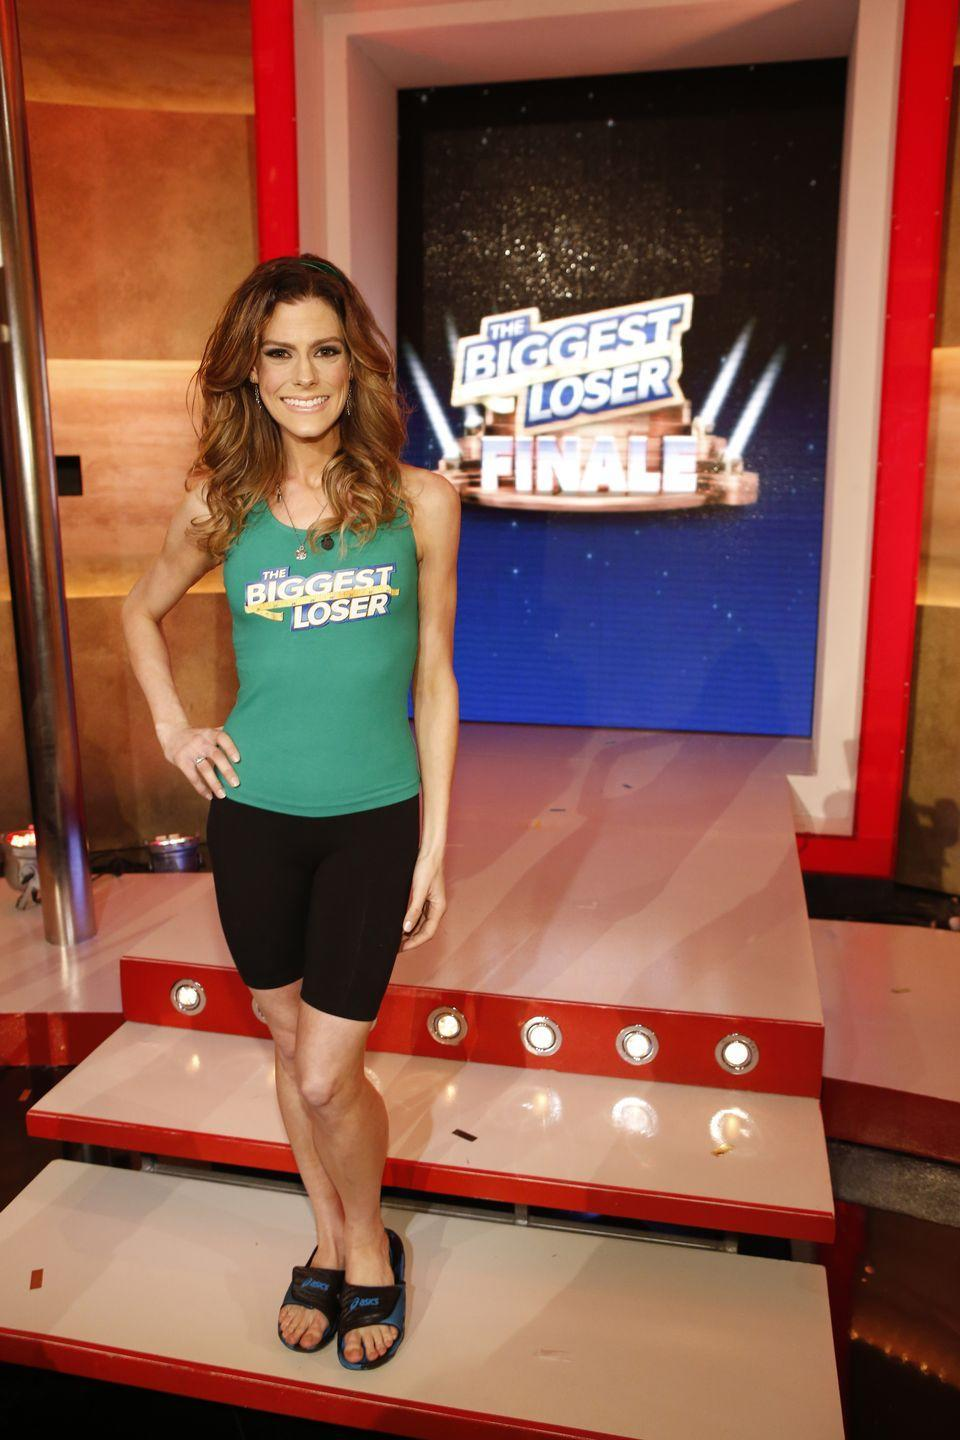 <p>Rachel had a massive weight loss, and went from 260 pounds to 105 pounds. She ended up winning season 15, but received a lot of criticism for her incredibly small frame and low weight at the time of her win.</p>